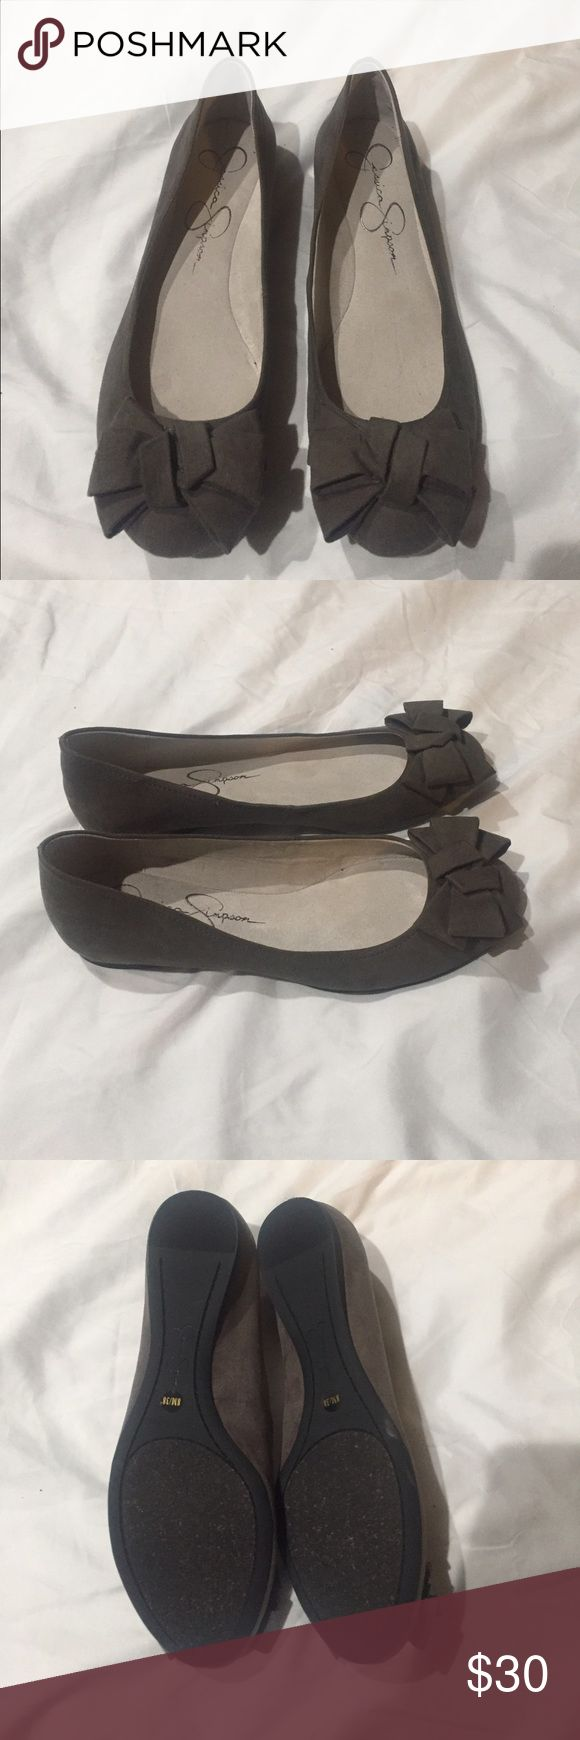 ✨Flash Sale✨Jessica Simpson gray Flats New Jessica Simpson gray flats with bow on the front. Price is Firm❗️ Jessica Simpson Shoes Flats & Loafers